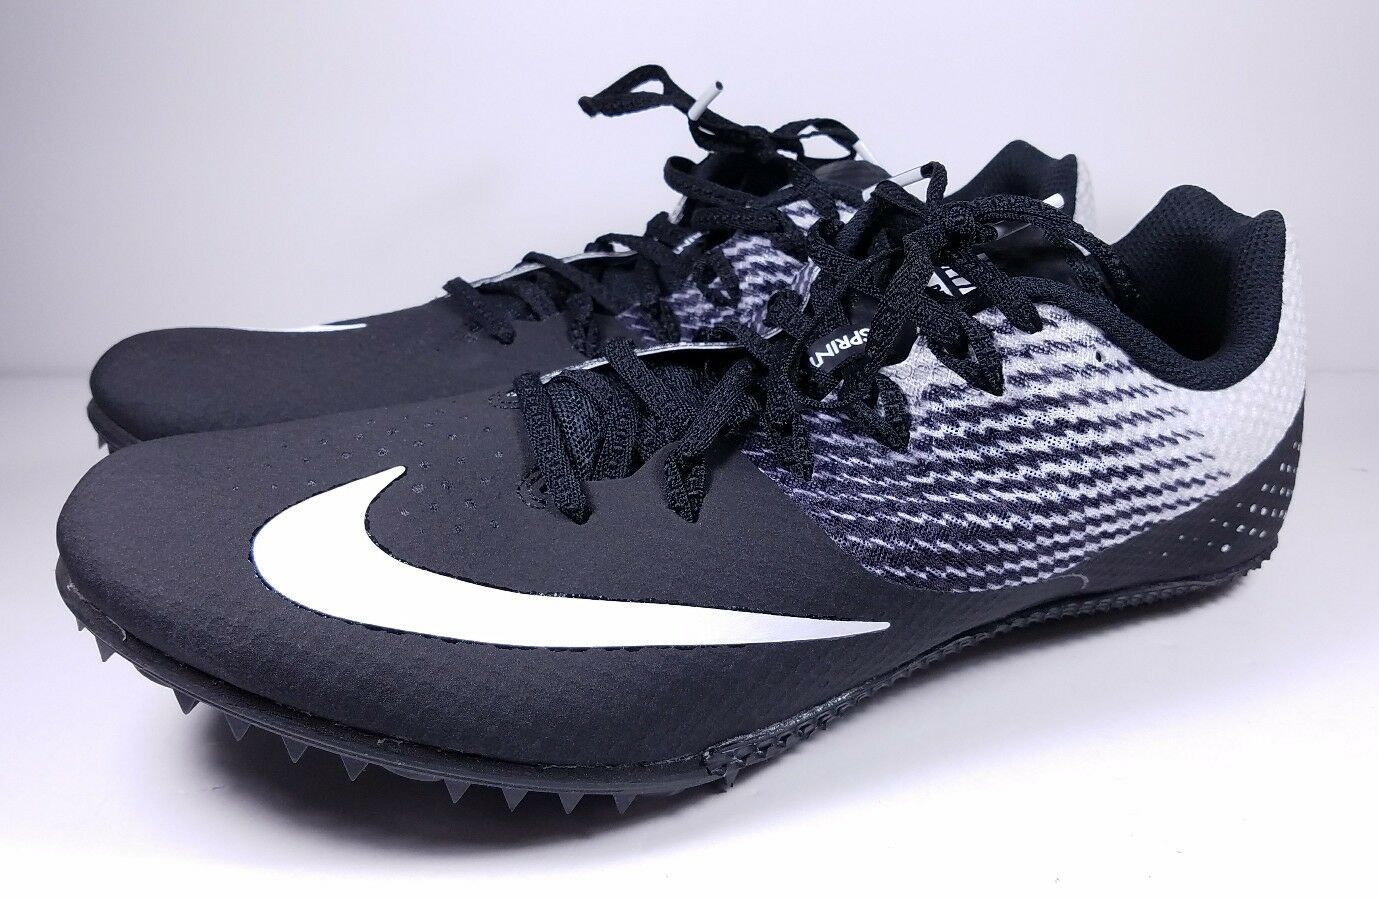 Nike Rival Size 12 Spikes Zoom Rival Nike S8 Track Running Shoes Black White 806554-011 4f5752